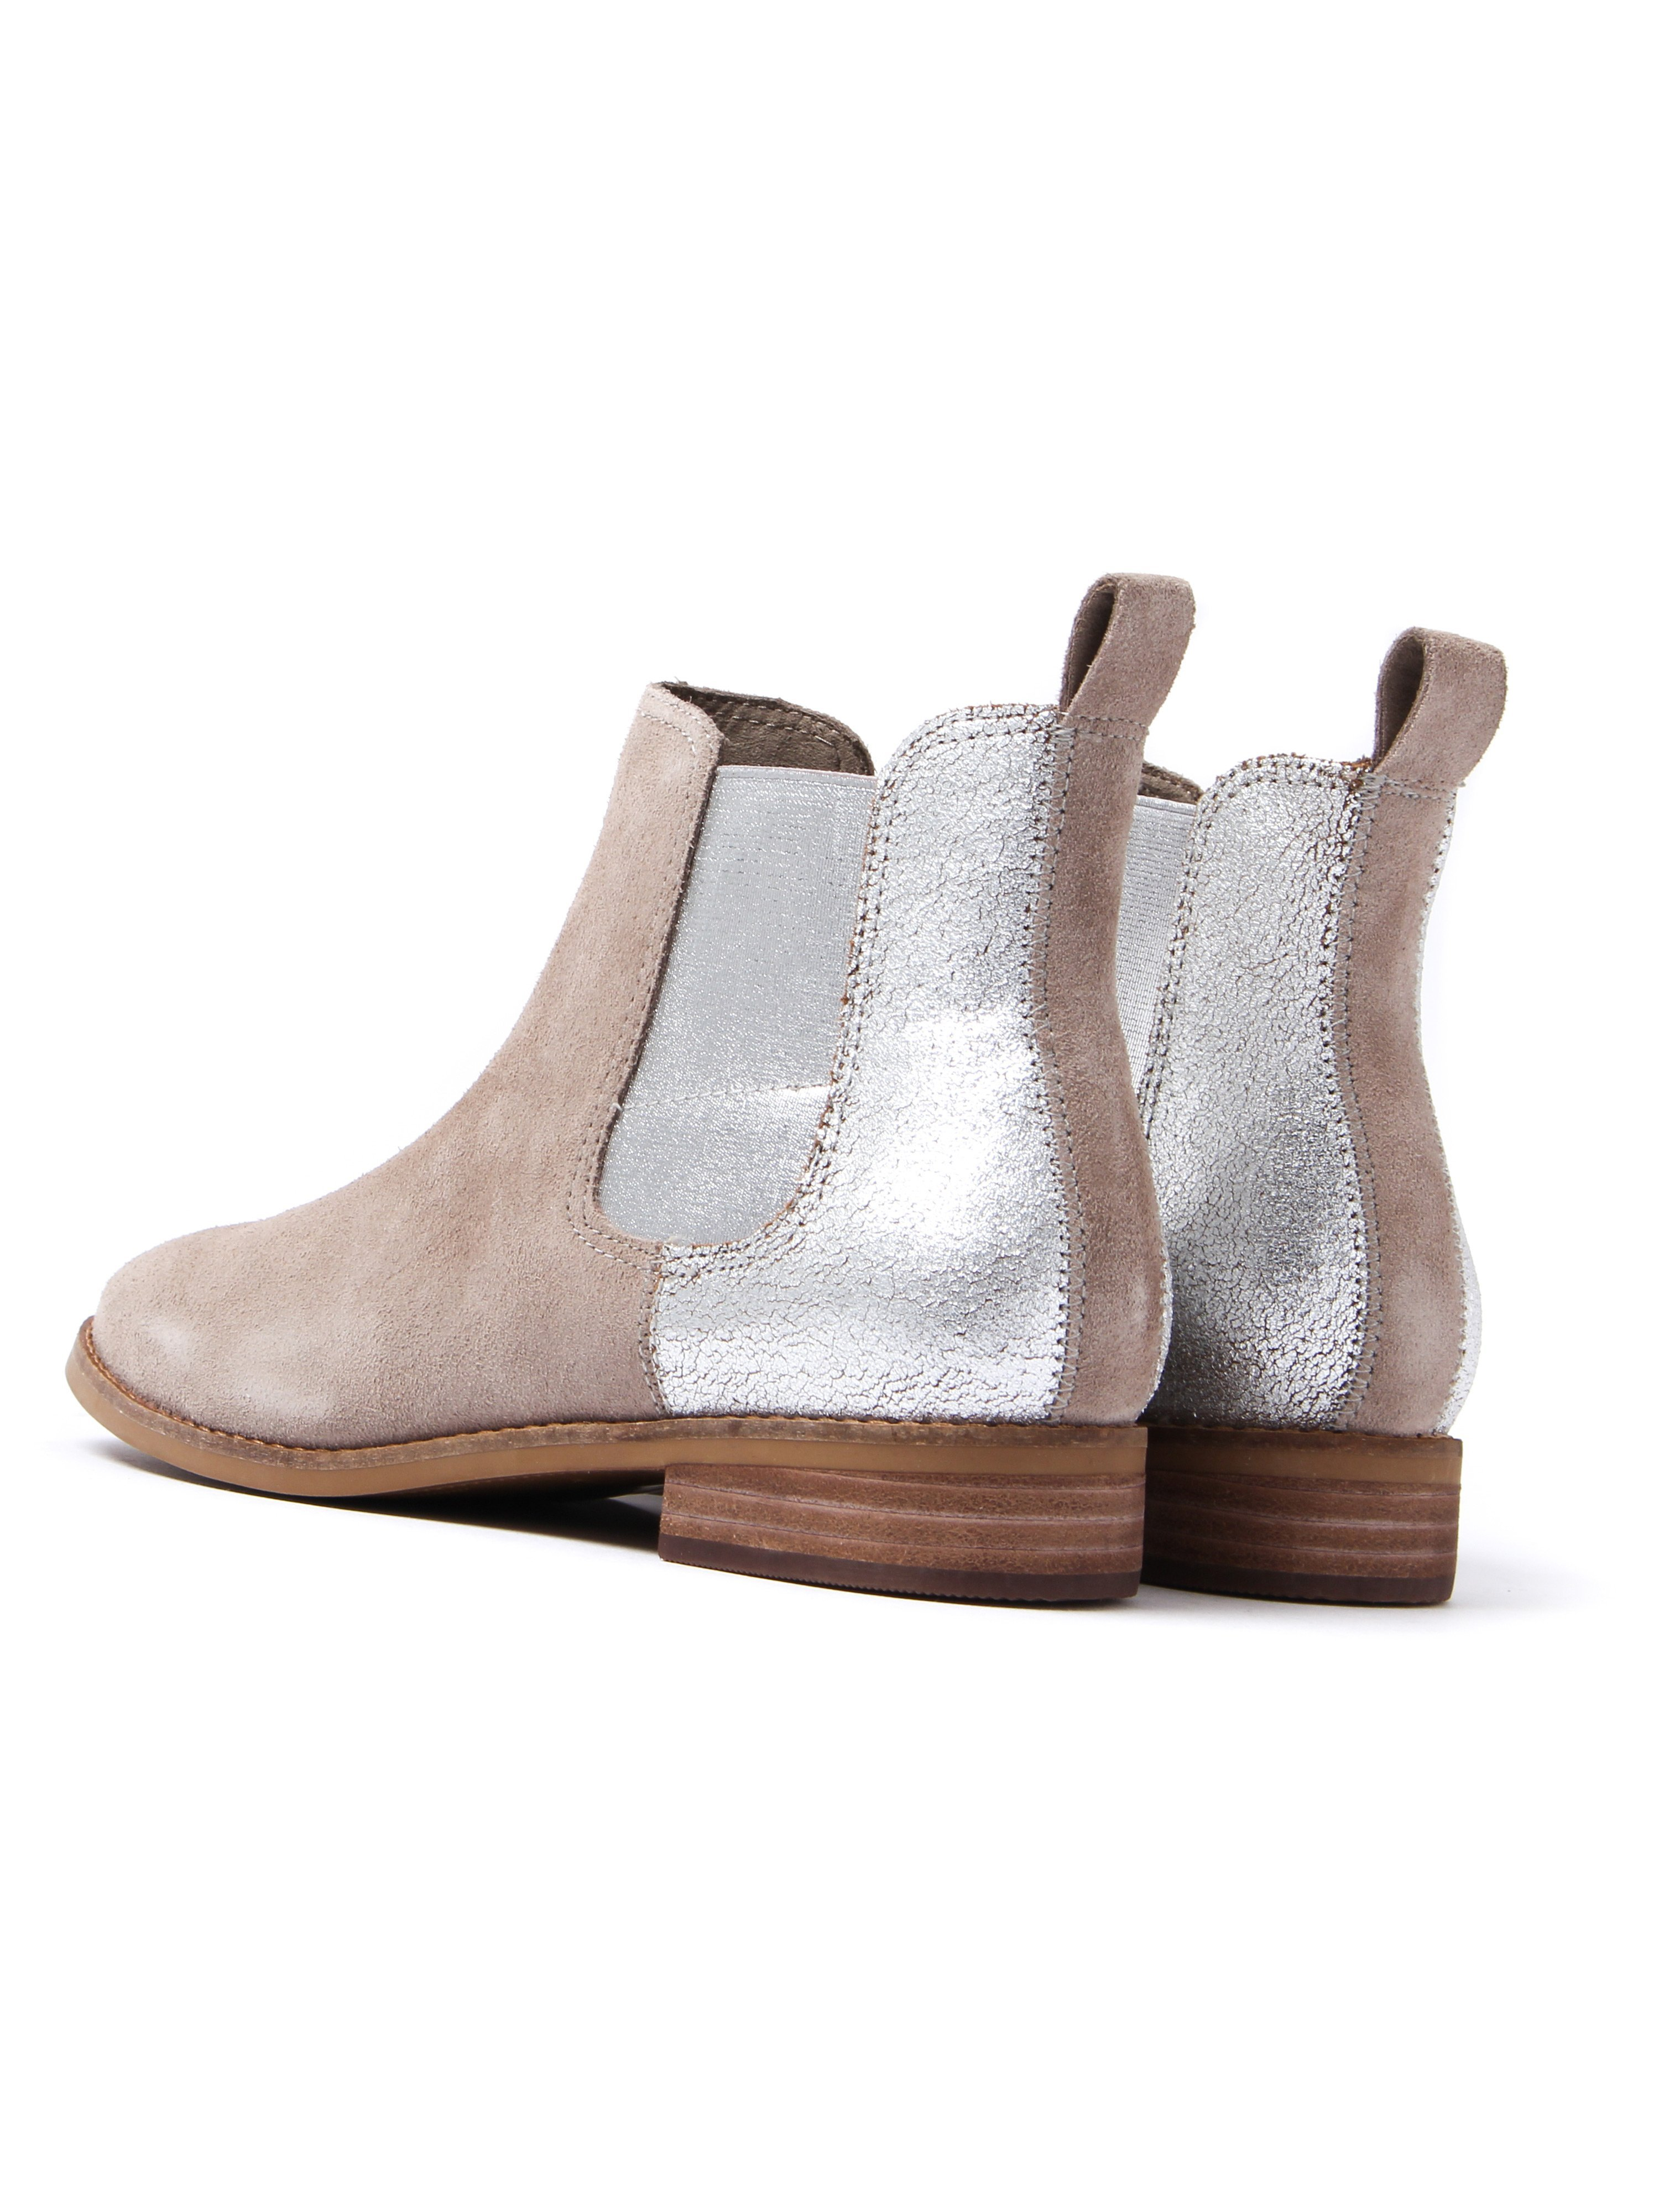 Toms Women's Ella Chelsea Boots - Taupe